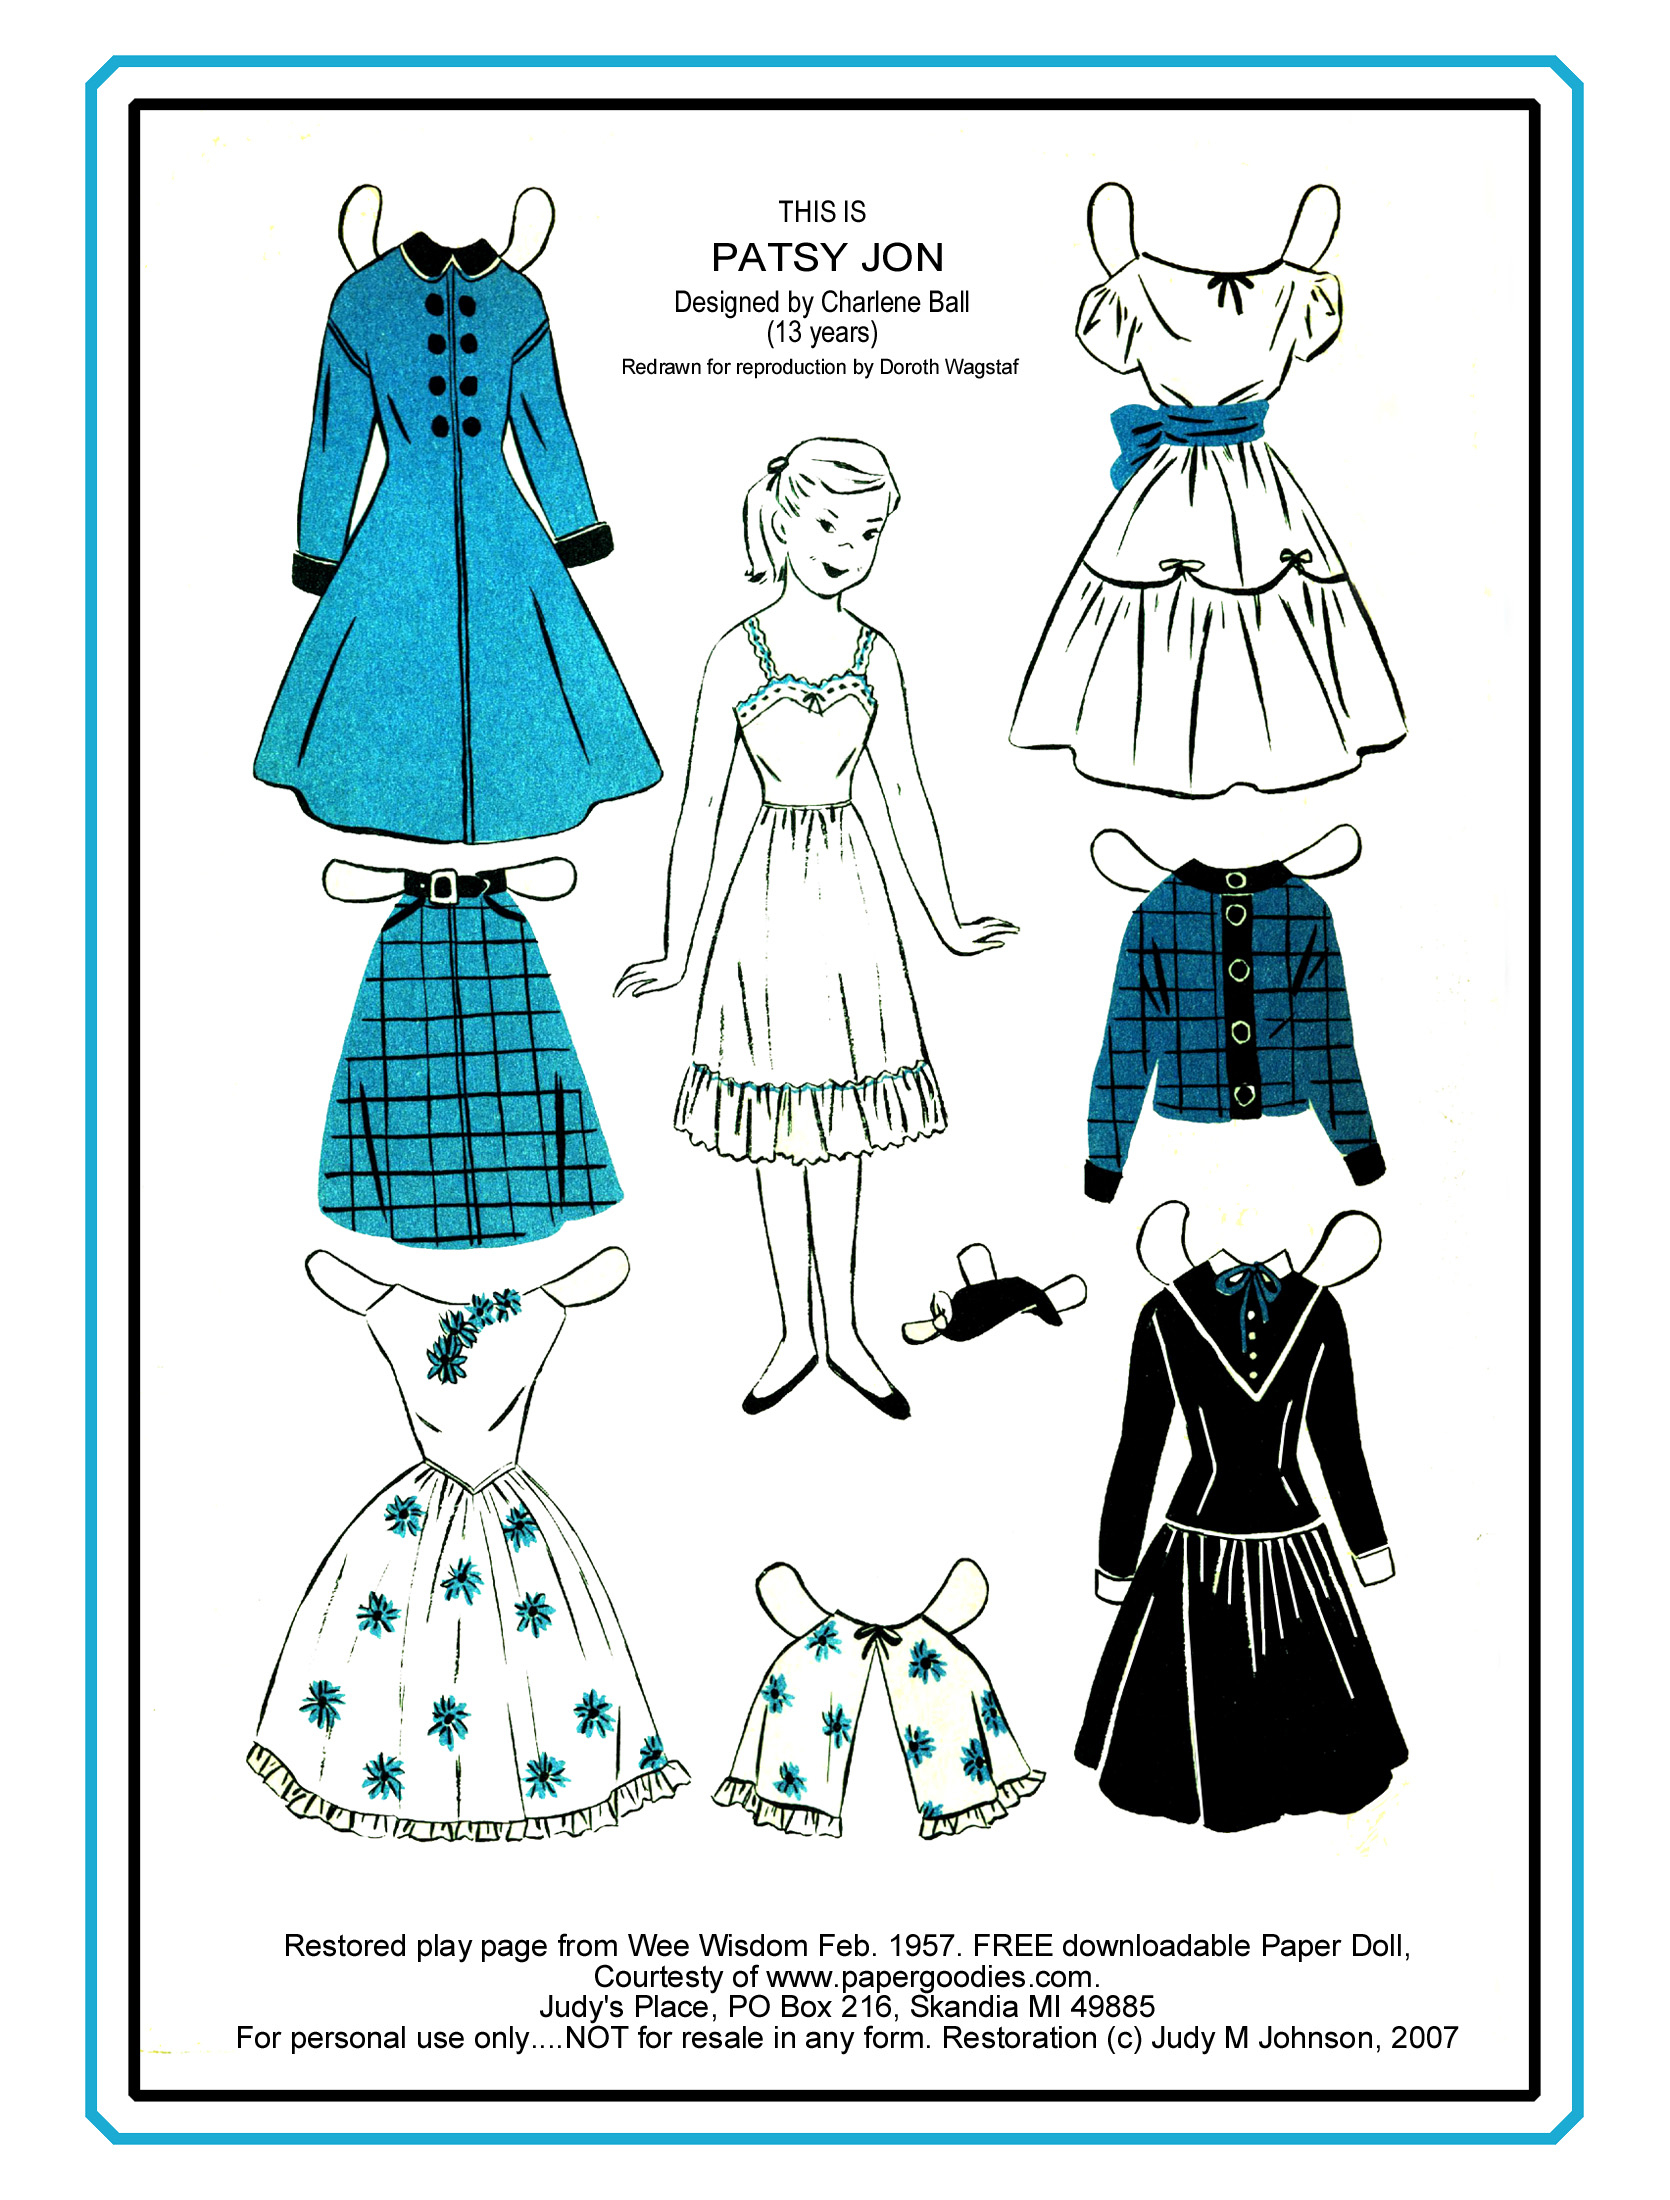 Paper Dolls Vintage Paper Dolls Celebrity Paper Dolls - Free Printable Paper Dolls From Around The World